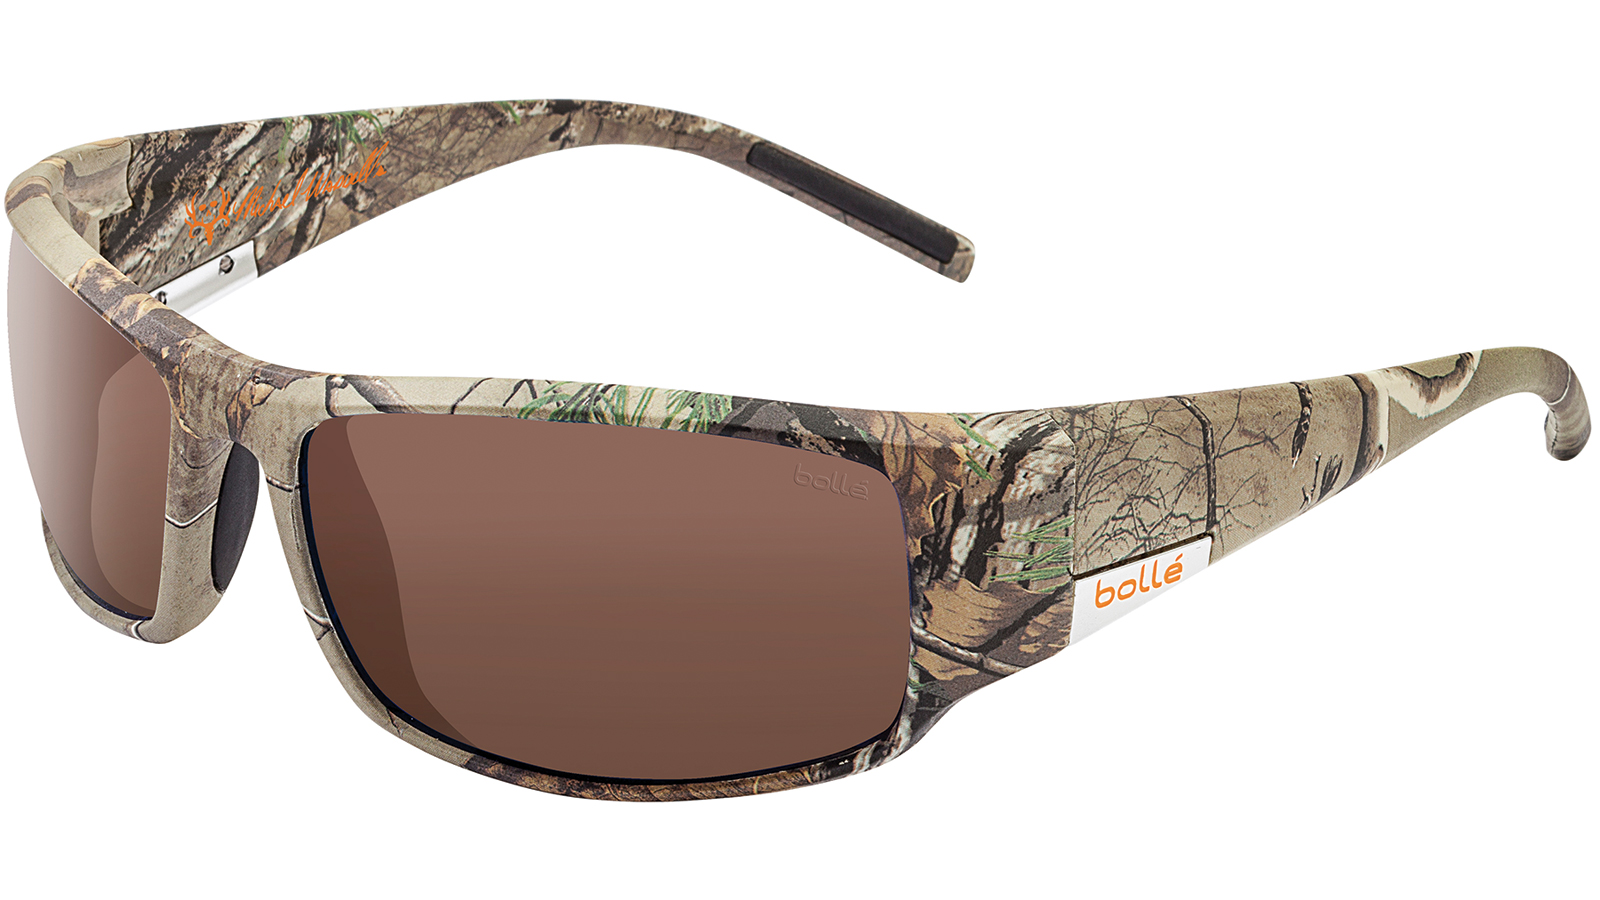 Bolle 12036 King Shooting|Sporting Glasses Realtree Xtra